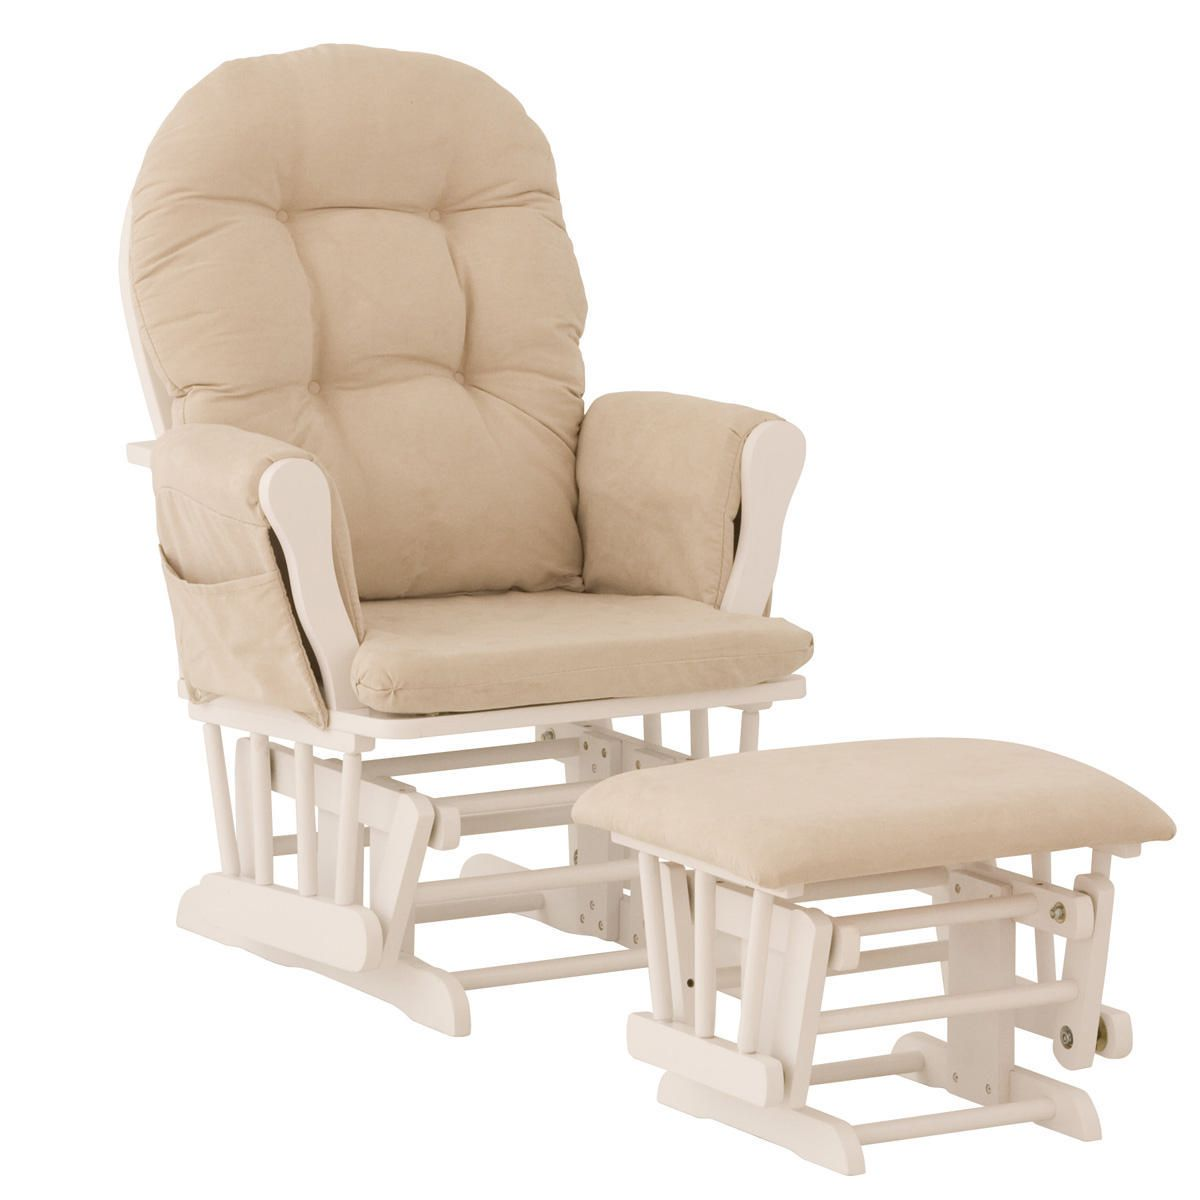 astonishing castle pottery recliner glider shermag r to used babies little chairs swivel smothery ah us smartly rocking toys chair glide rocker nursery combo barn in gliders